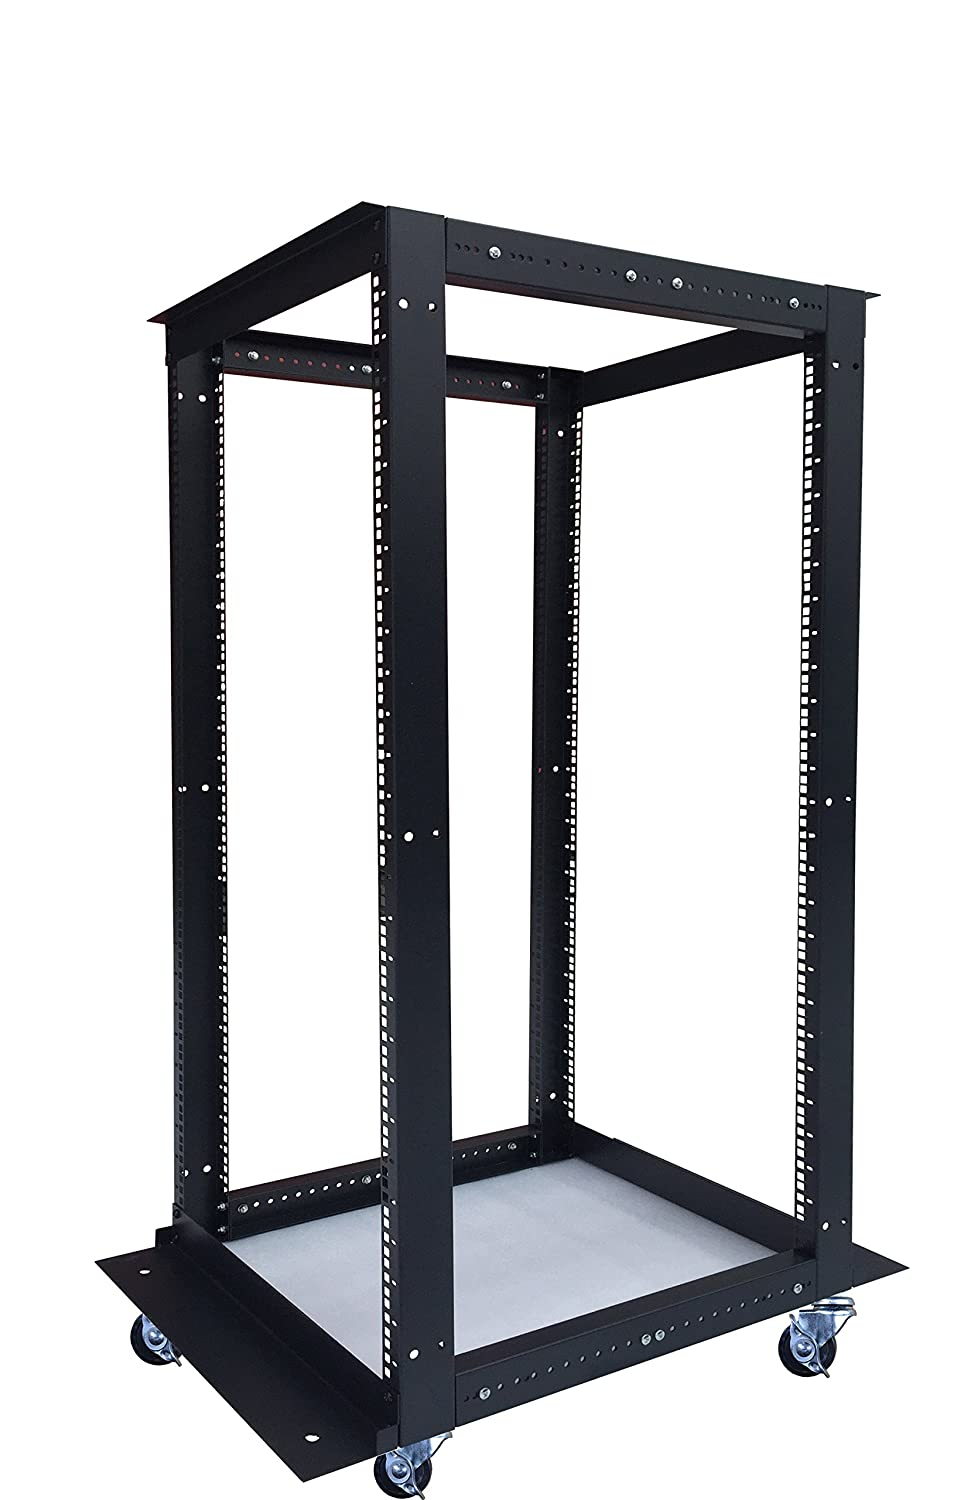 18U 4 Post Open Frame 19' Network Server Rack Cabinet Adjustable Depth 24'-37' Sysracks 18U DOR